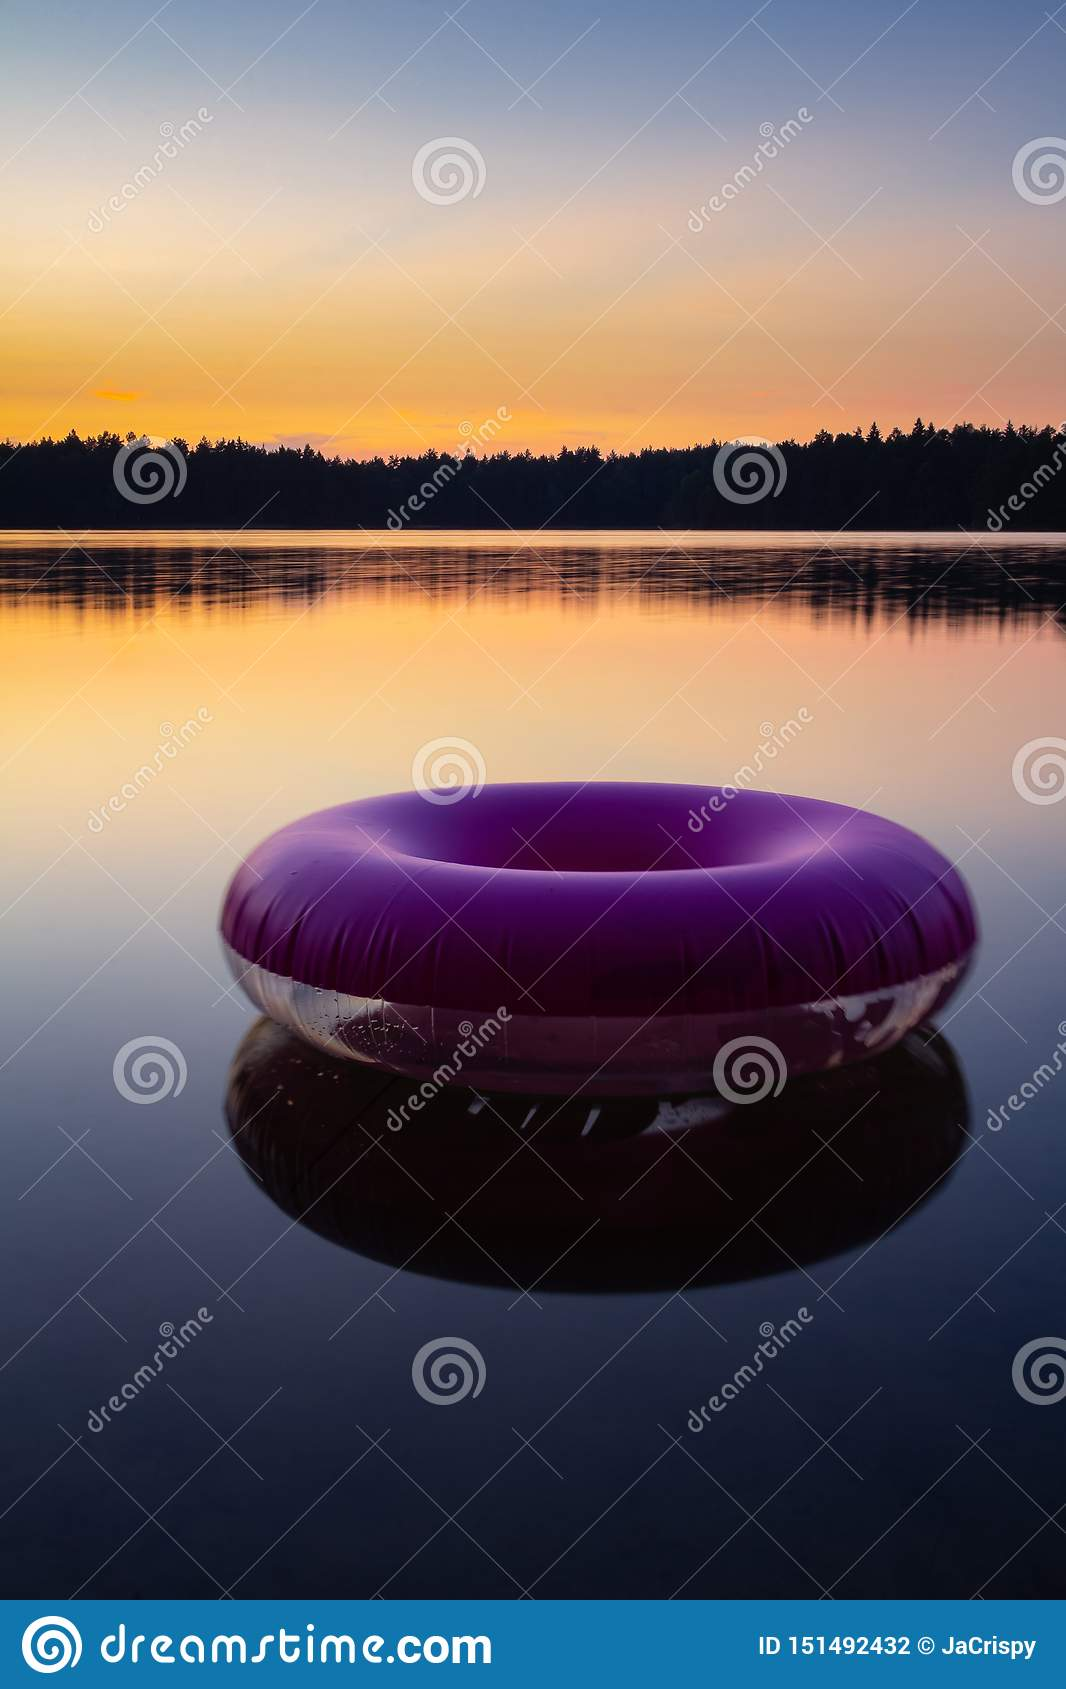 Purple inflatable swimming ring on top of still lake water surface at sunset. Rubber rescue wheel and colourful evening sky and